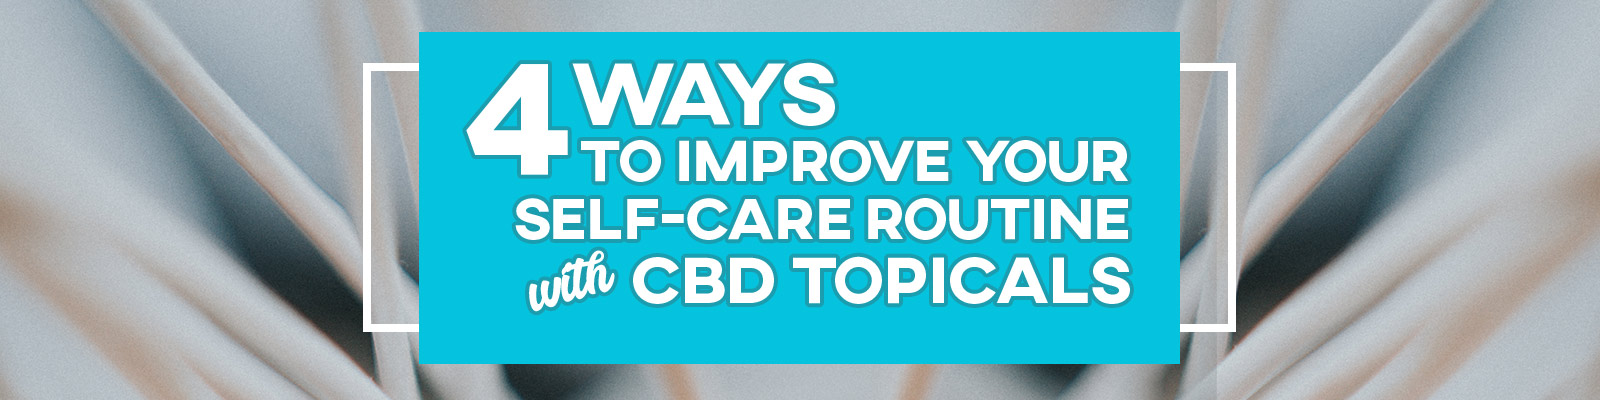 Improve Your Self-Care with CBD Topicals Banner